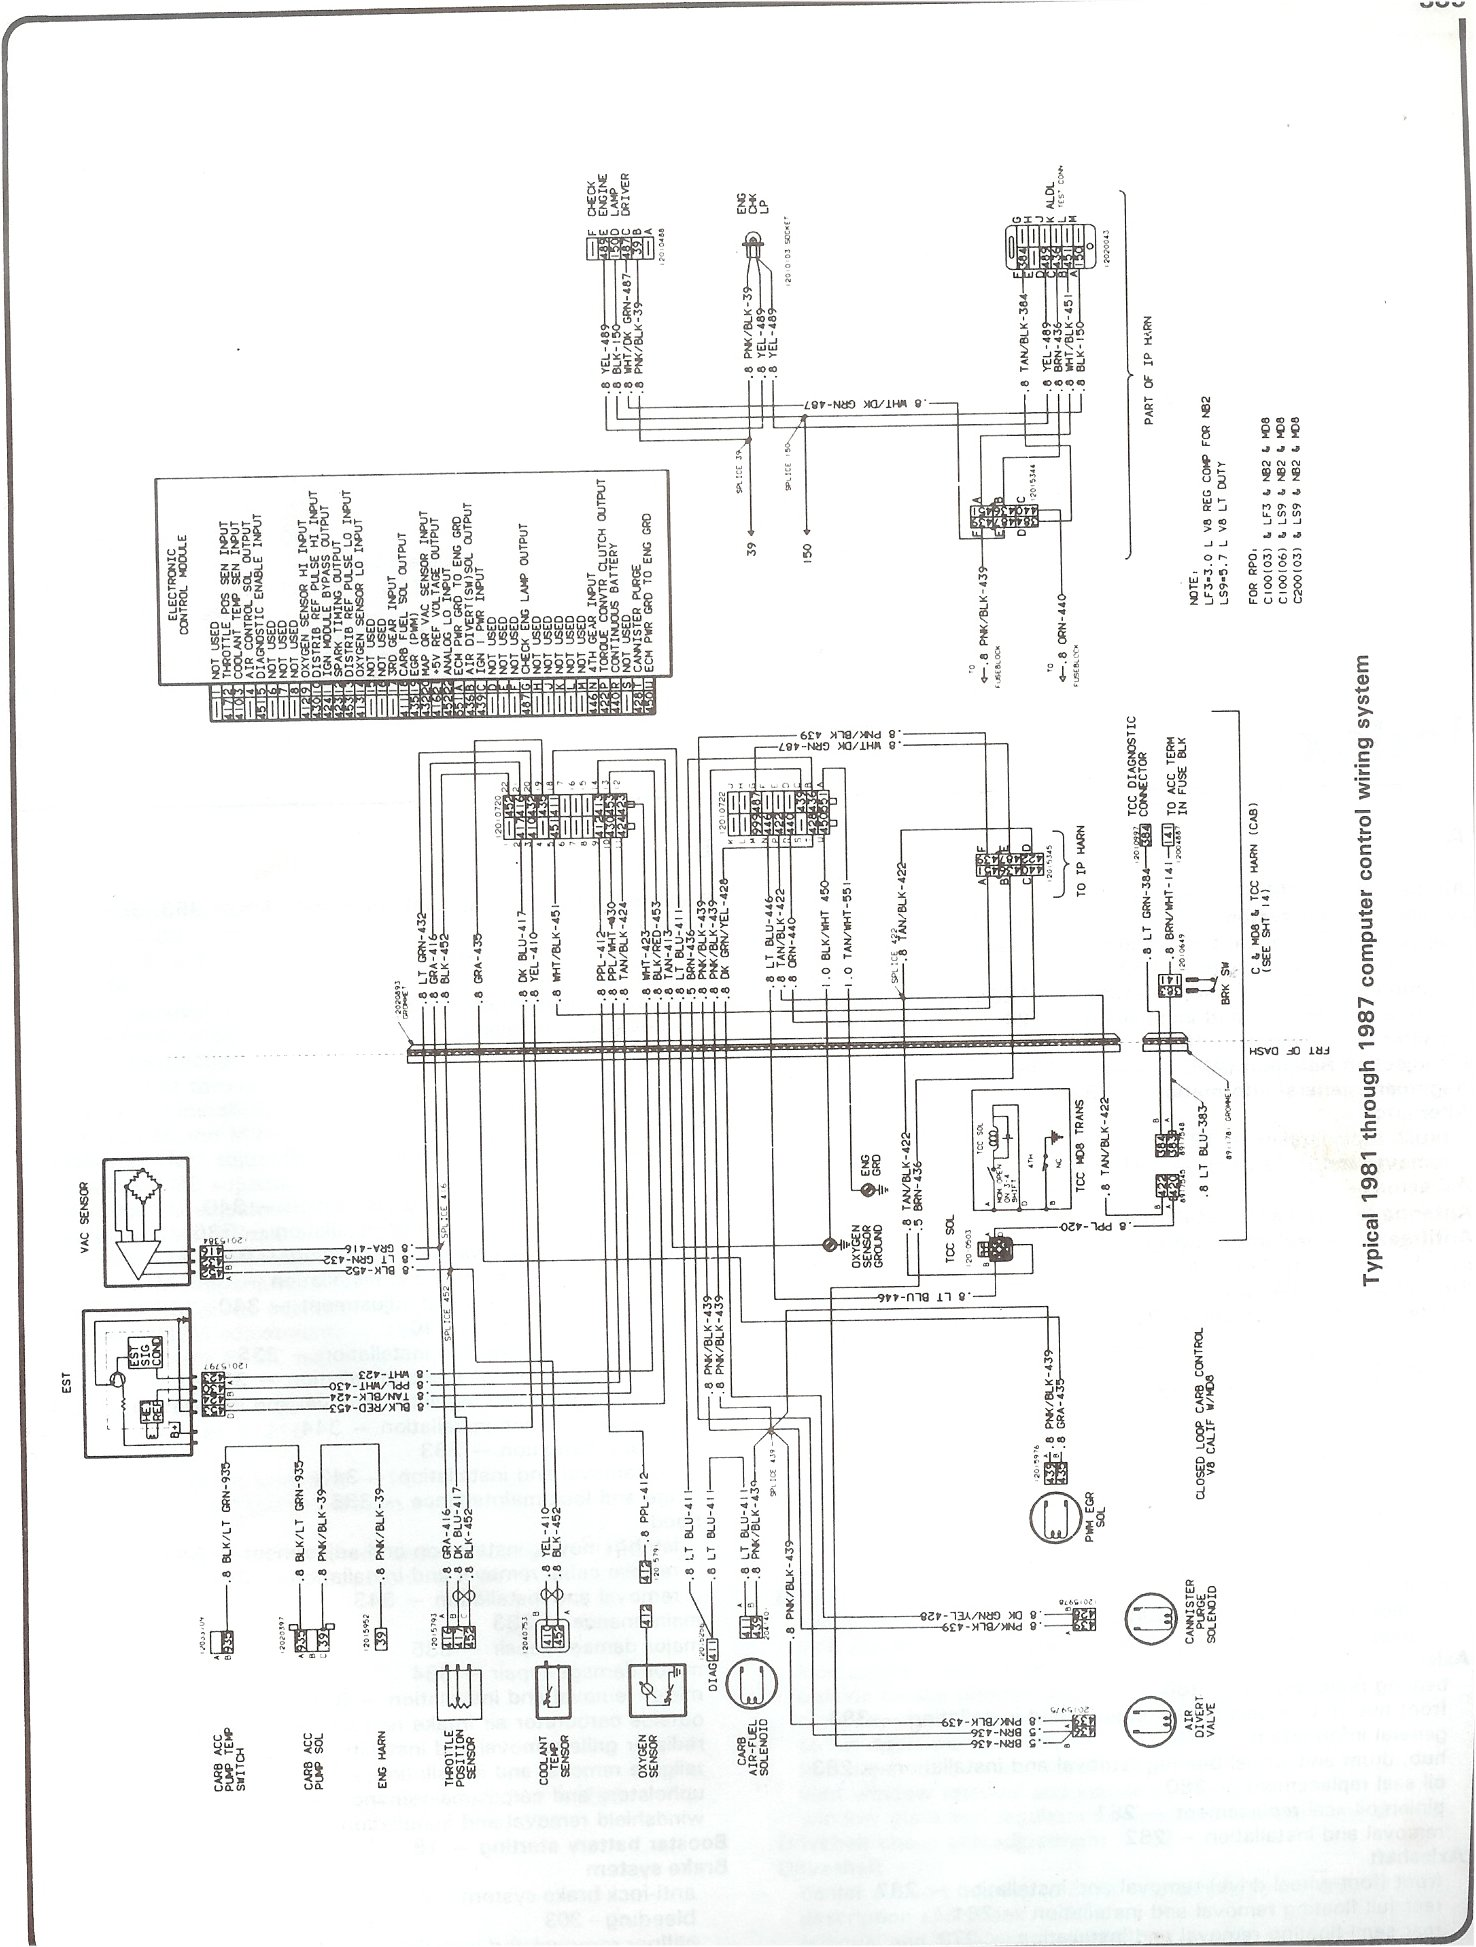 81 87_computer_control_wiring complete 73 87 wiring diagrams chevrolet ignition wiring diagram at fashall.co